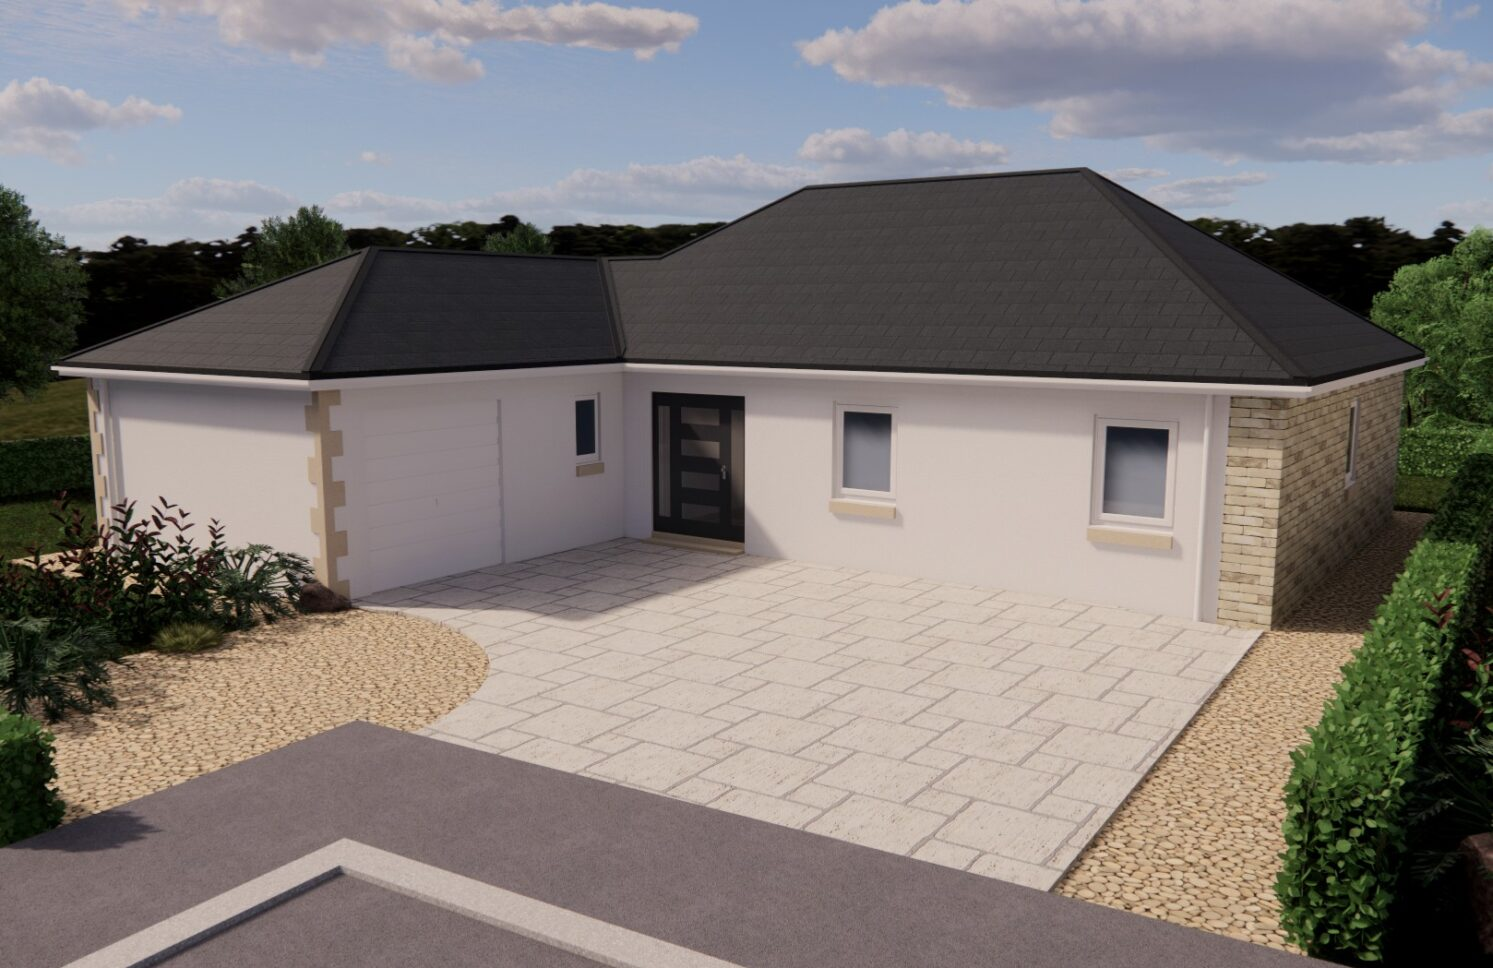 Detached bungalow the breamish at Village MEadows Lowick Northumberland